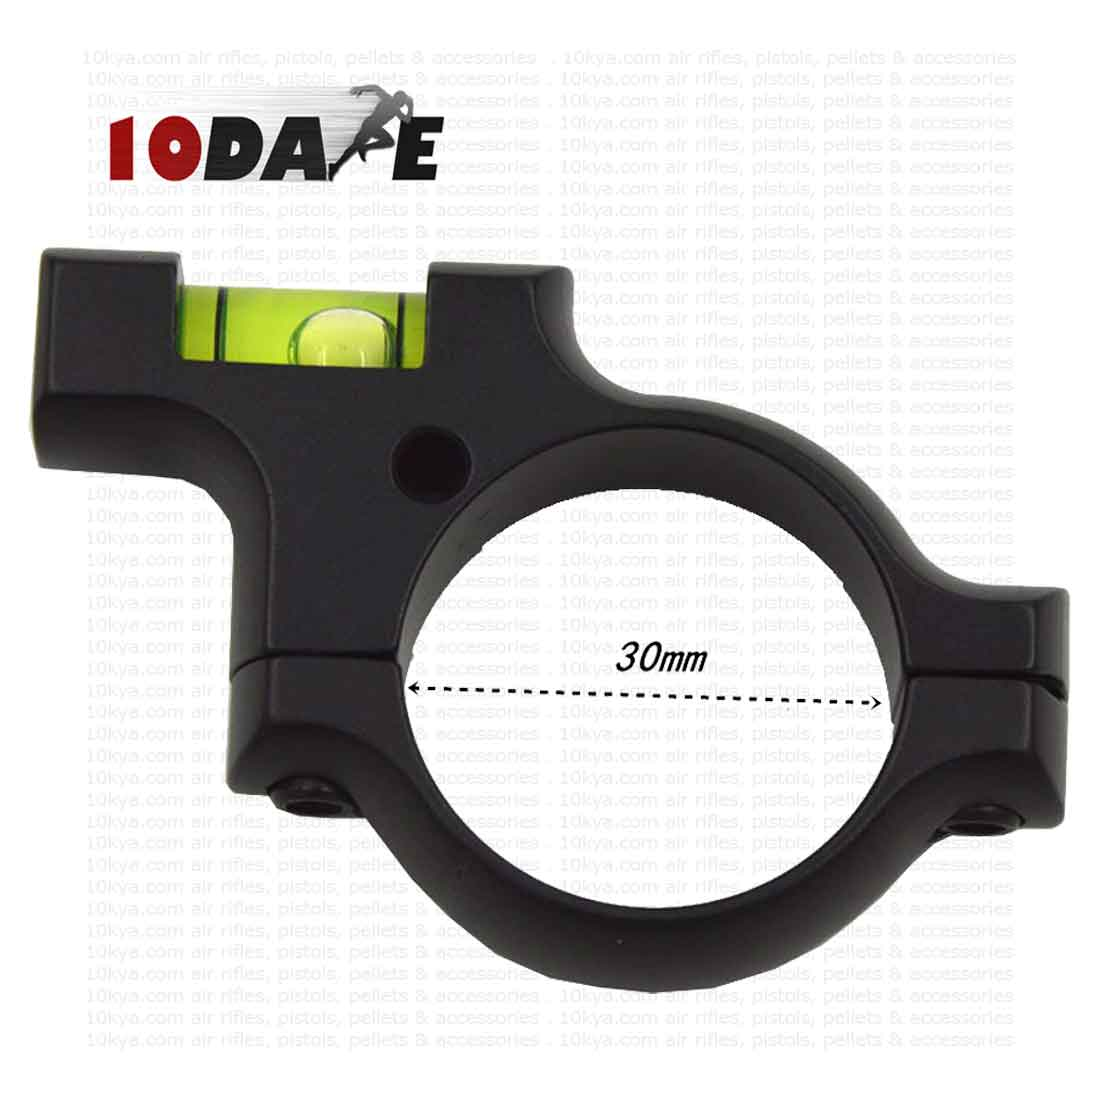 10Dare Bubble Spirit Level with Ring Mount For 30 mm Scopes   Aiming &  Shooting Aids   Spirit Levels for 100 Uses   Air Rifle Scopes & Sights [  HSN